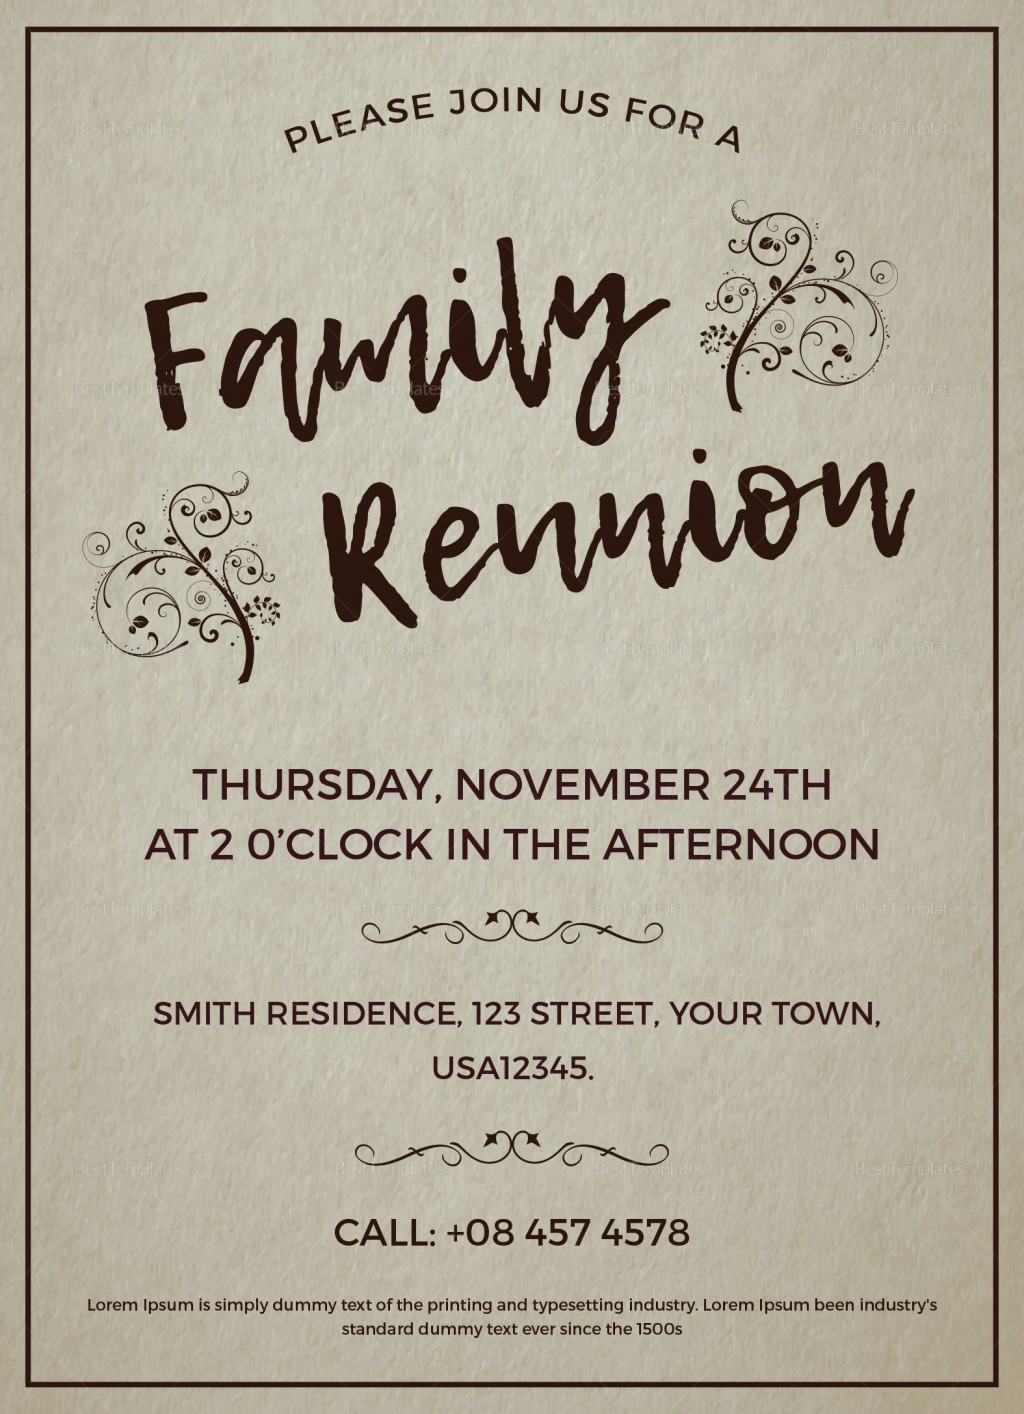 006 Stupendou Family Reunion Invitation Template Free High Def  For Word OnlineLarge